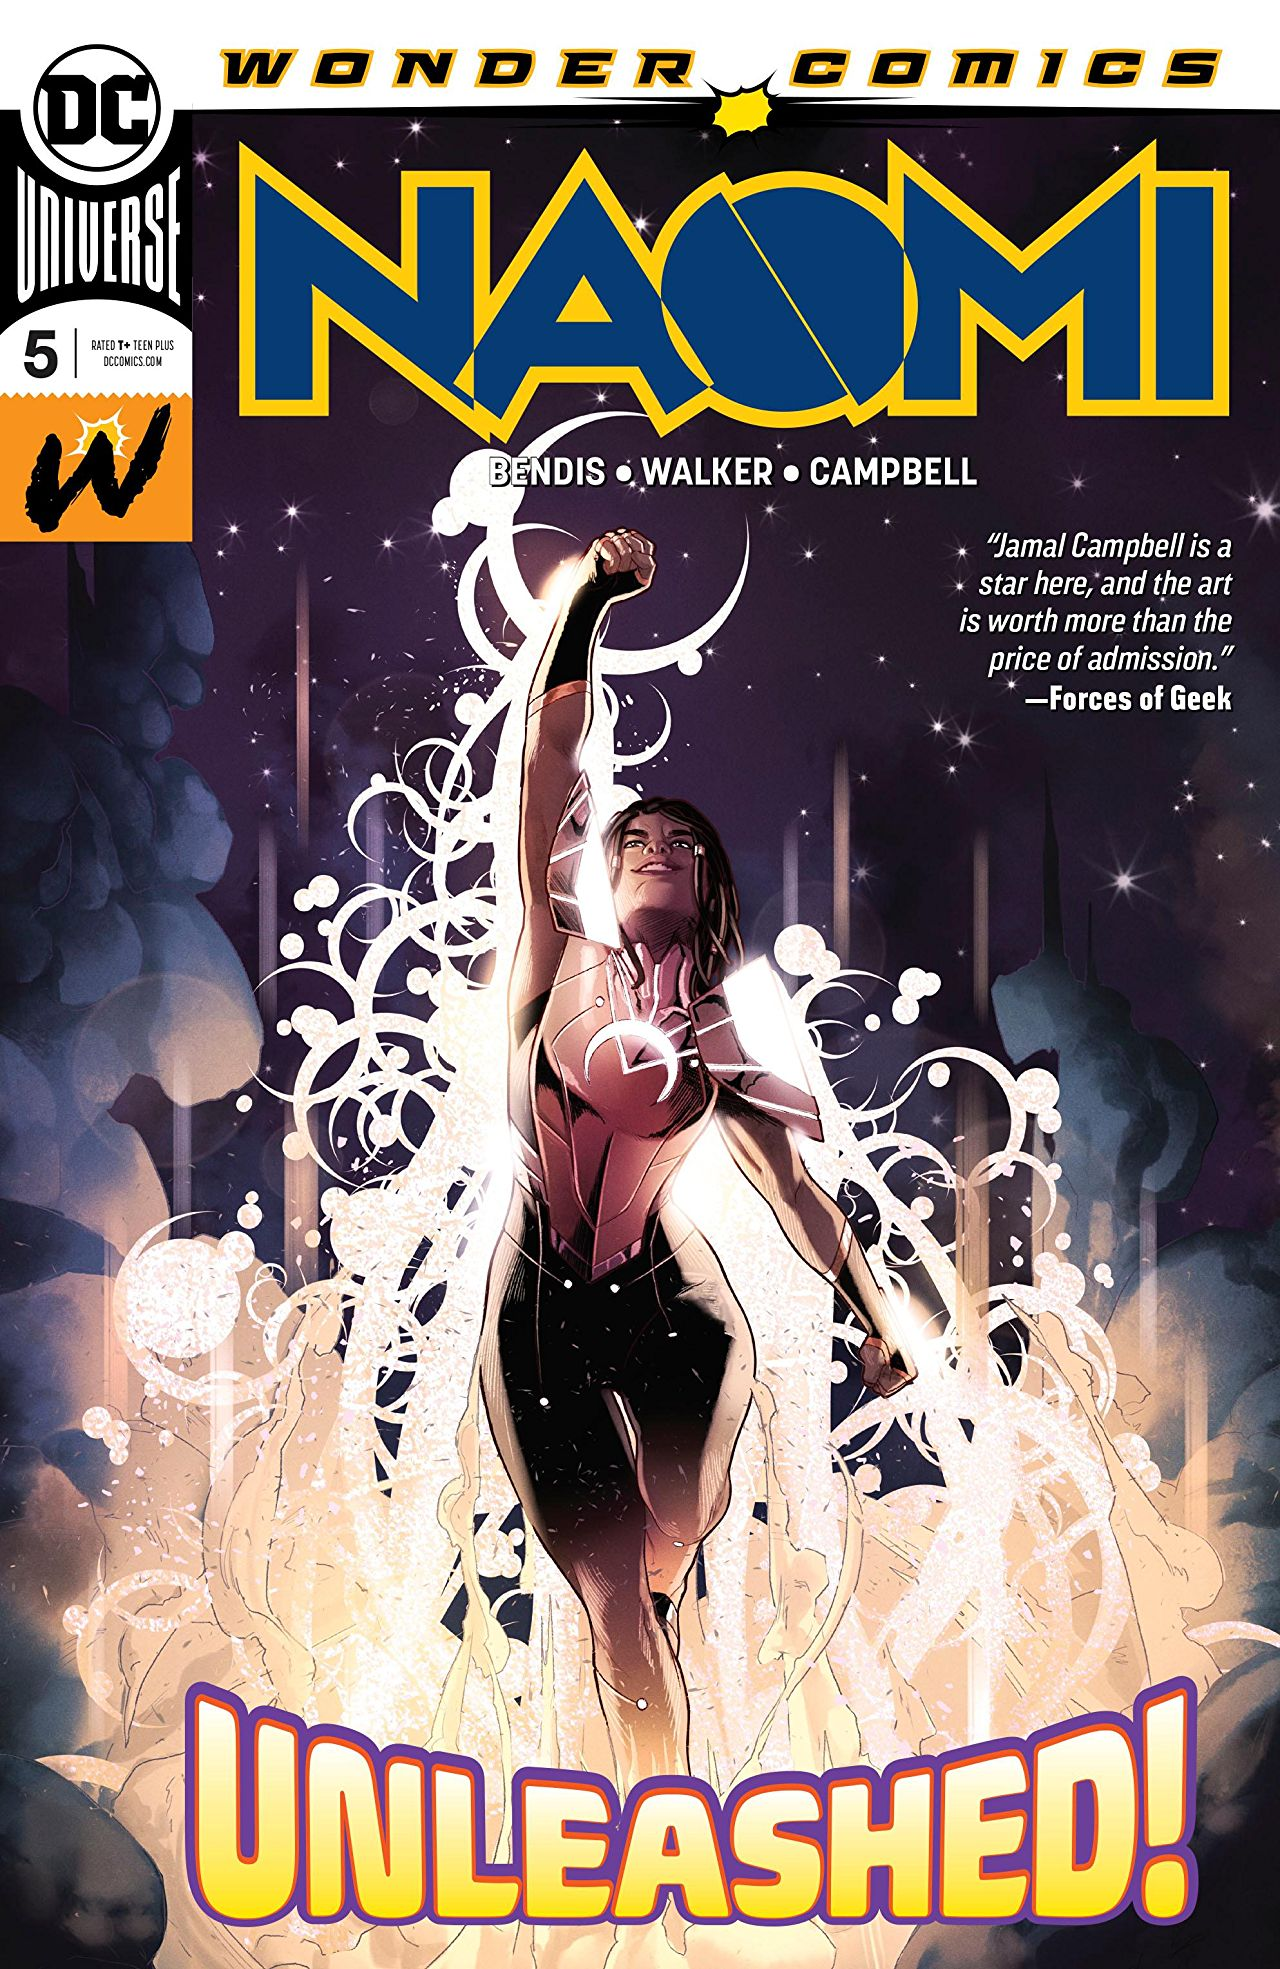 Naomi #5 review: Answers